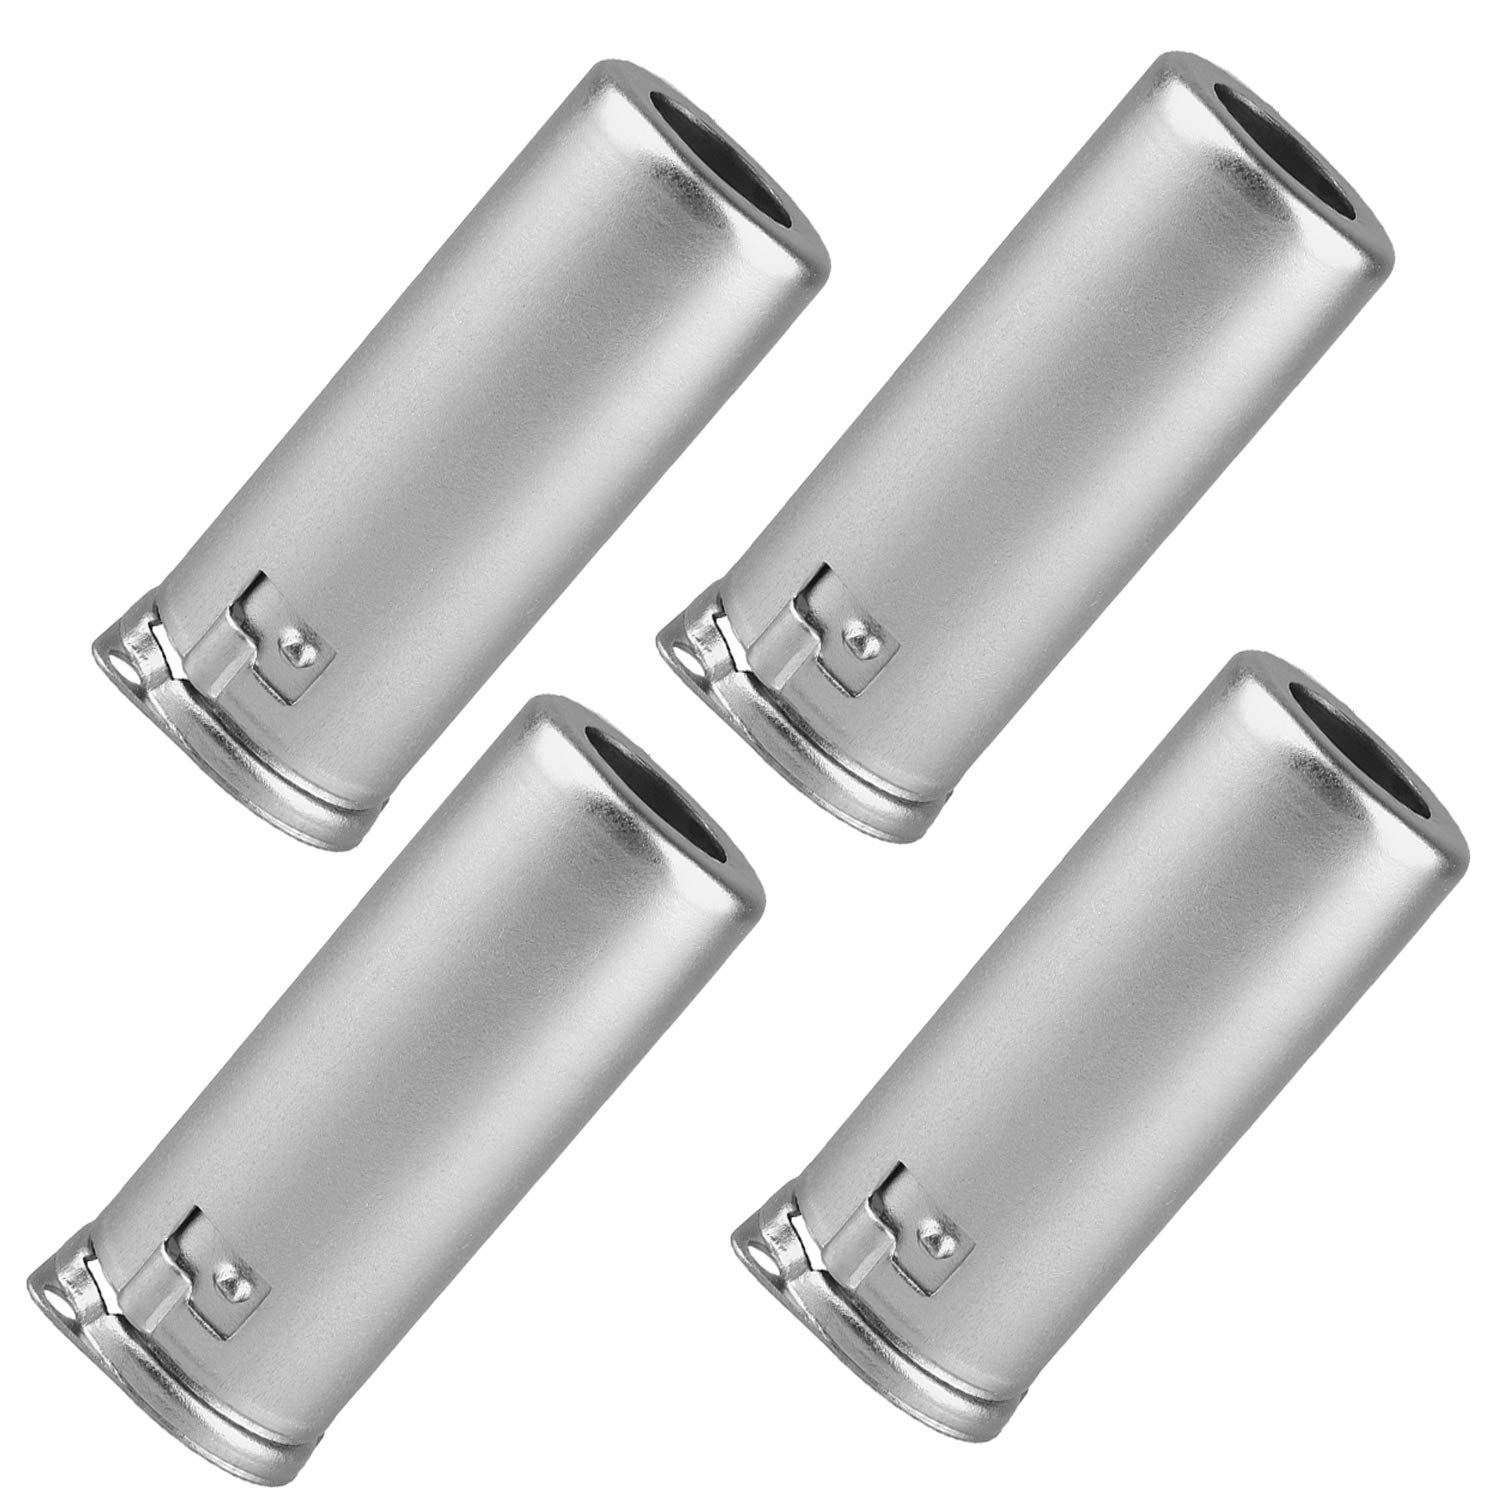 Vacuum Tube Shield Aluminum Alloy 9G-55 Shield Caps For 9 Pin 12AX7 12AU7 12AT7 Tubes, Silver